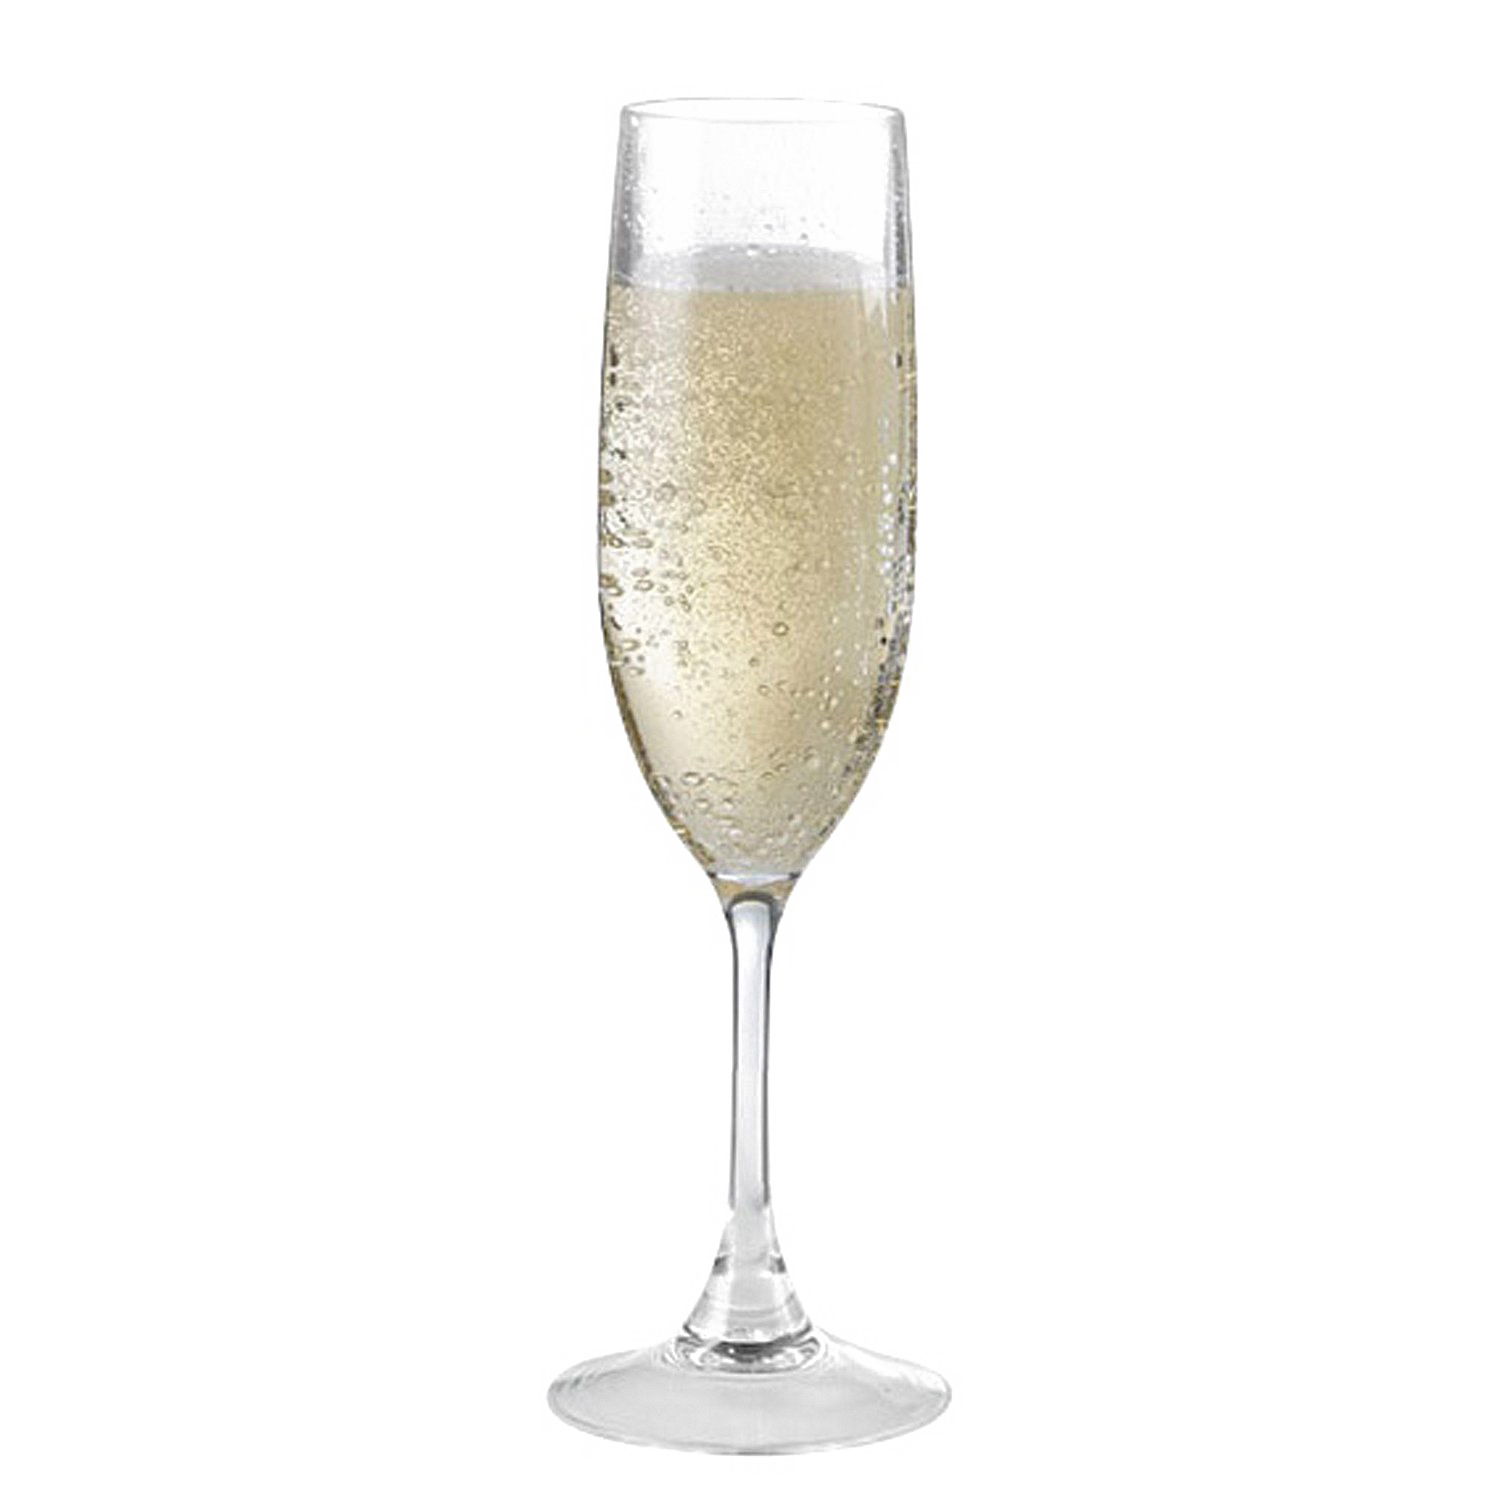 Champagne Glass PNG Image.